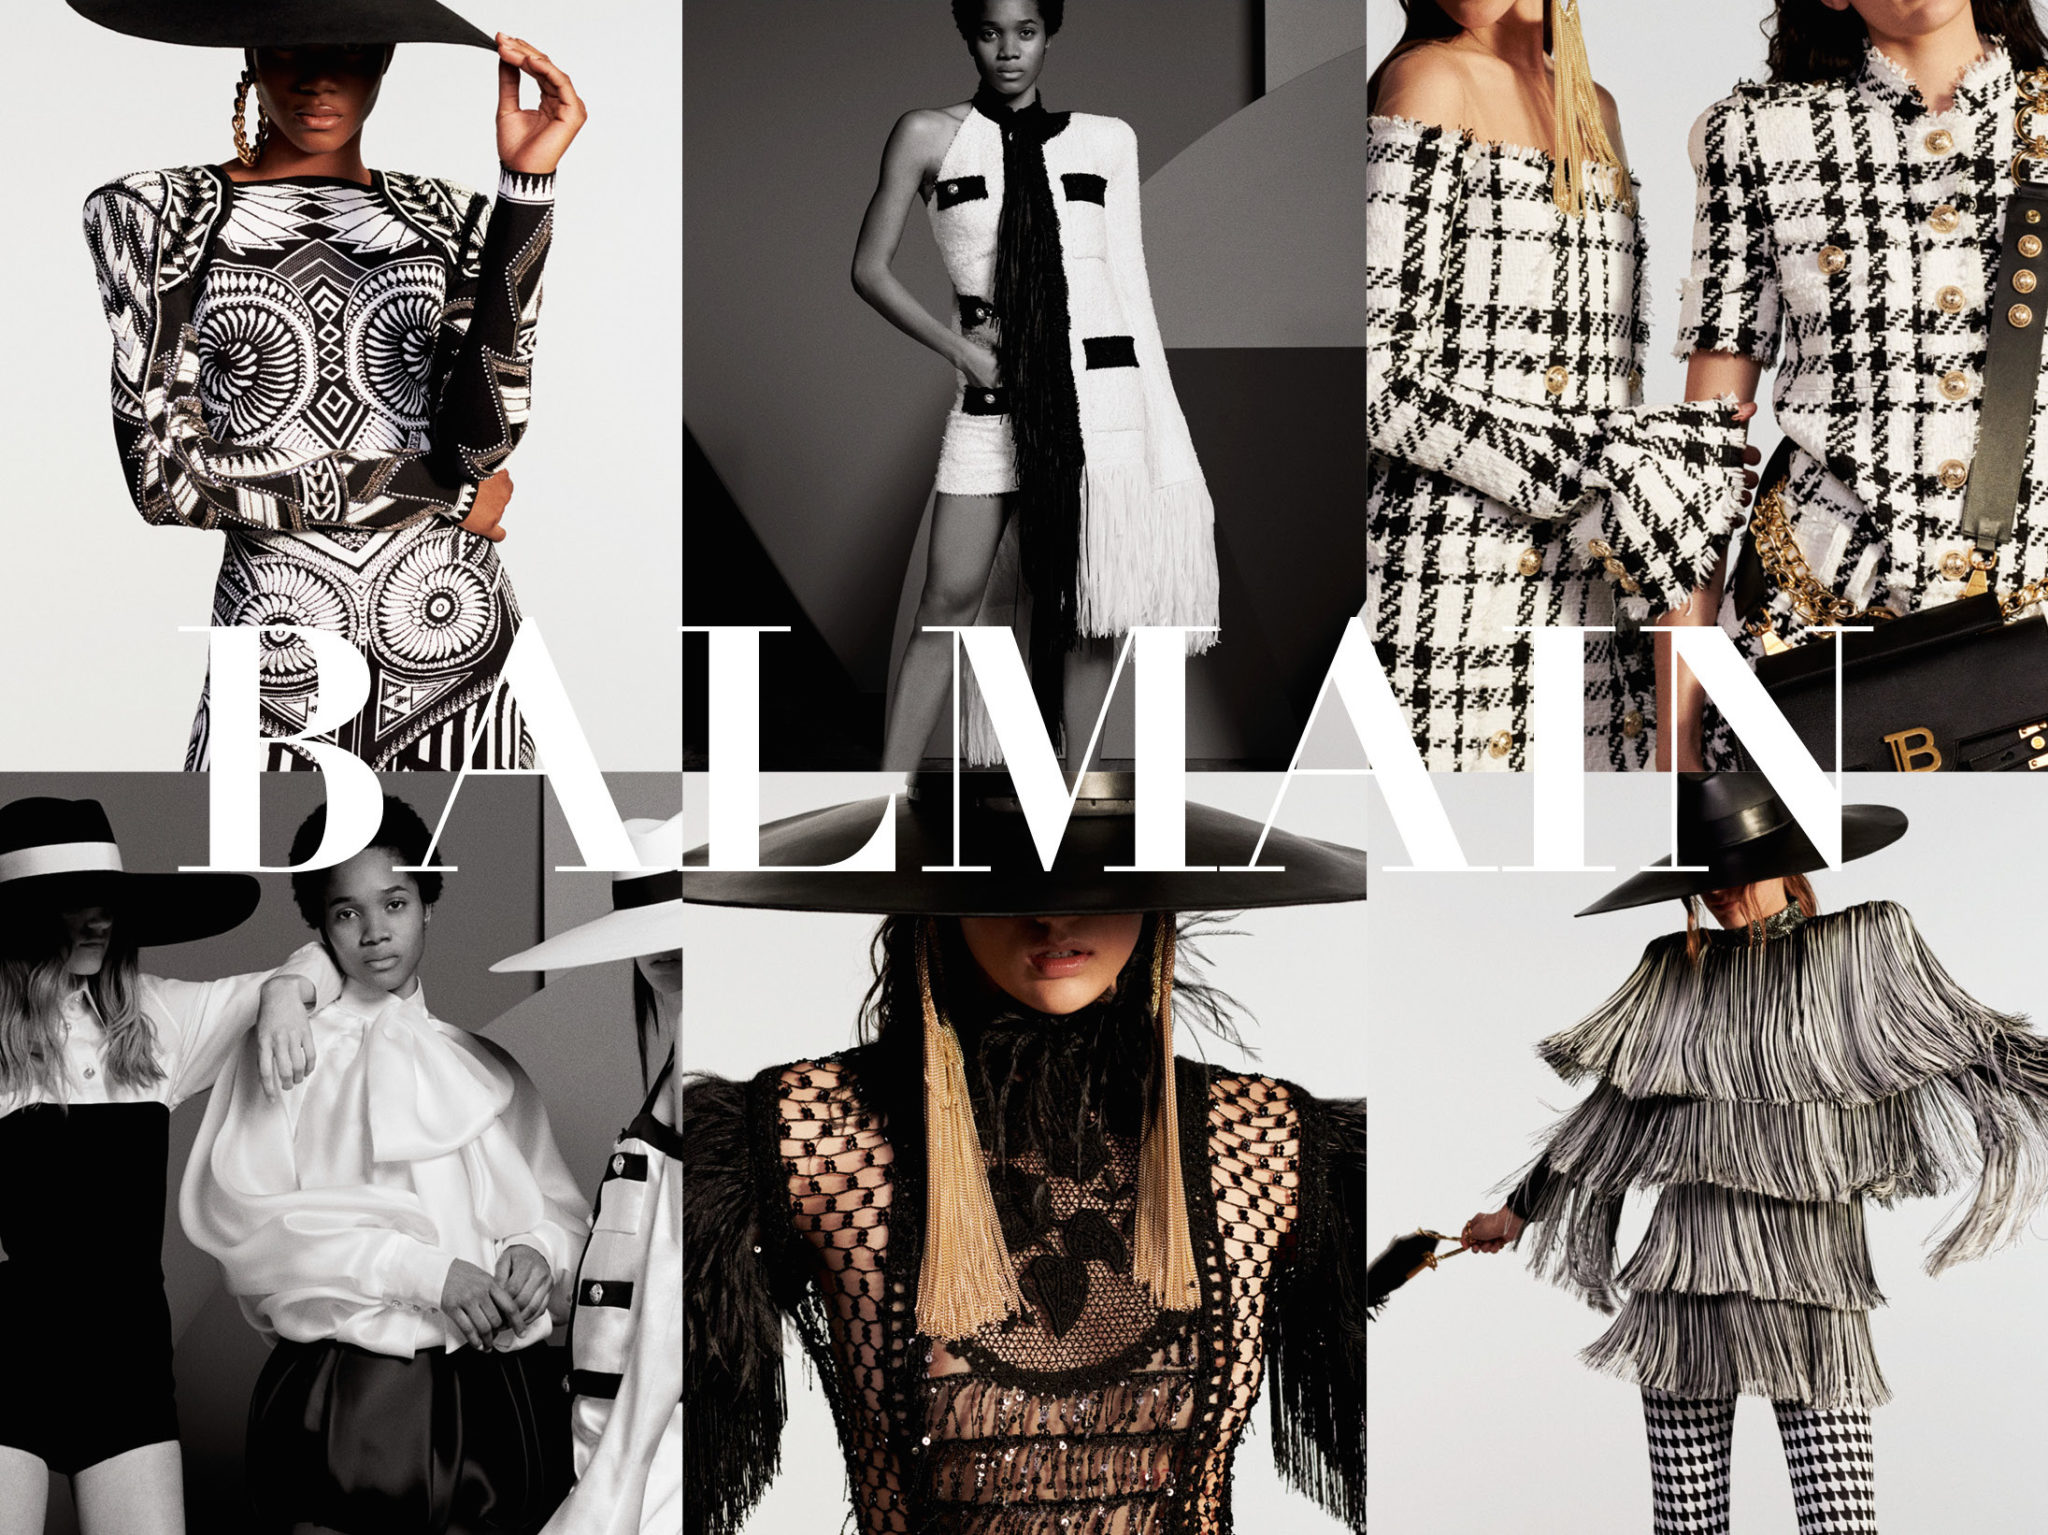 Olivier Rousteing returns to Balmain's roots for Resort '20